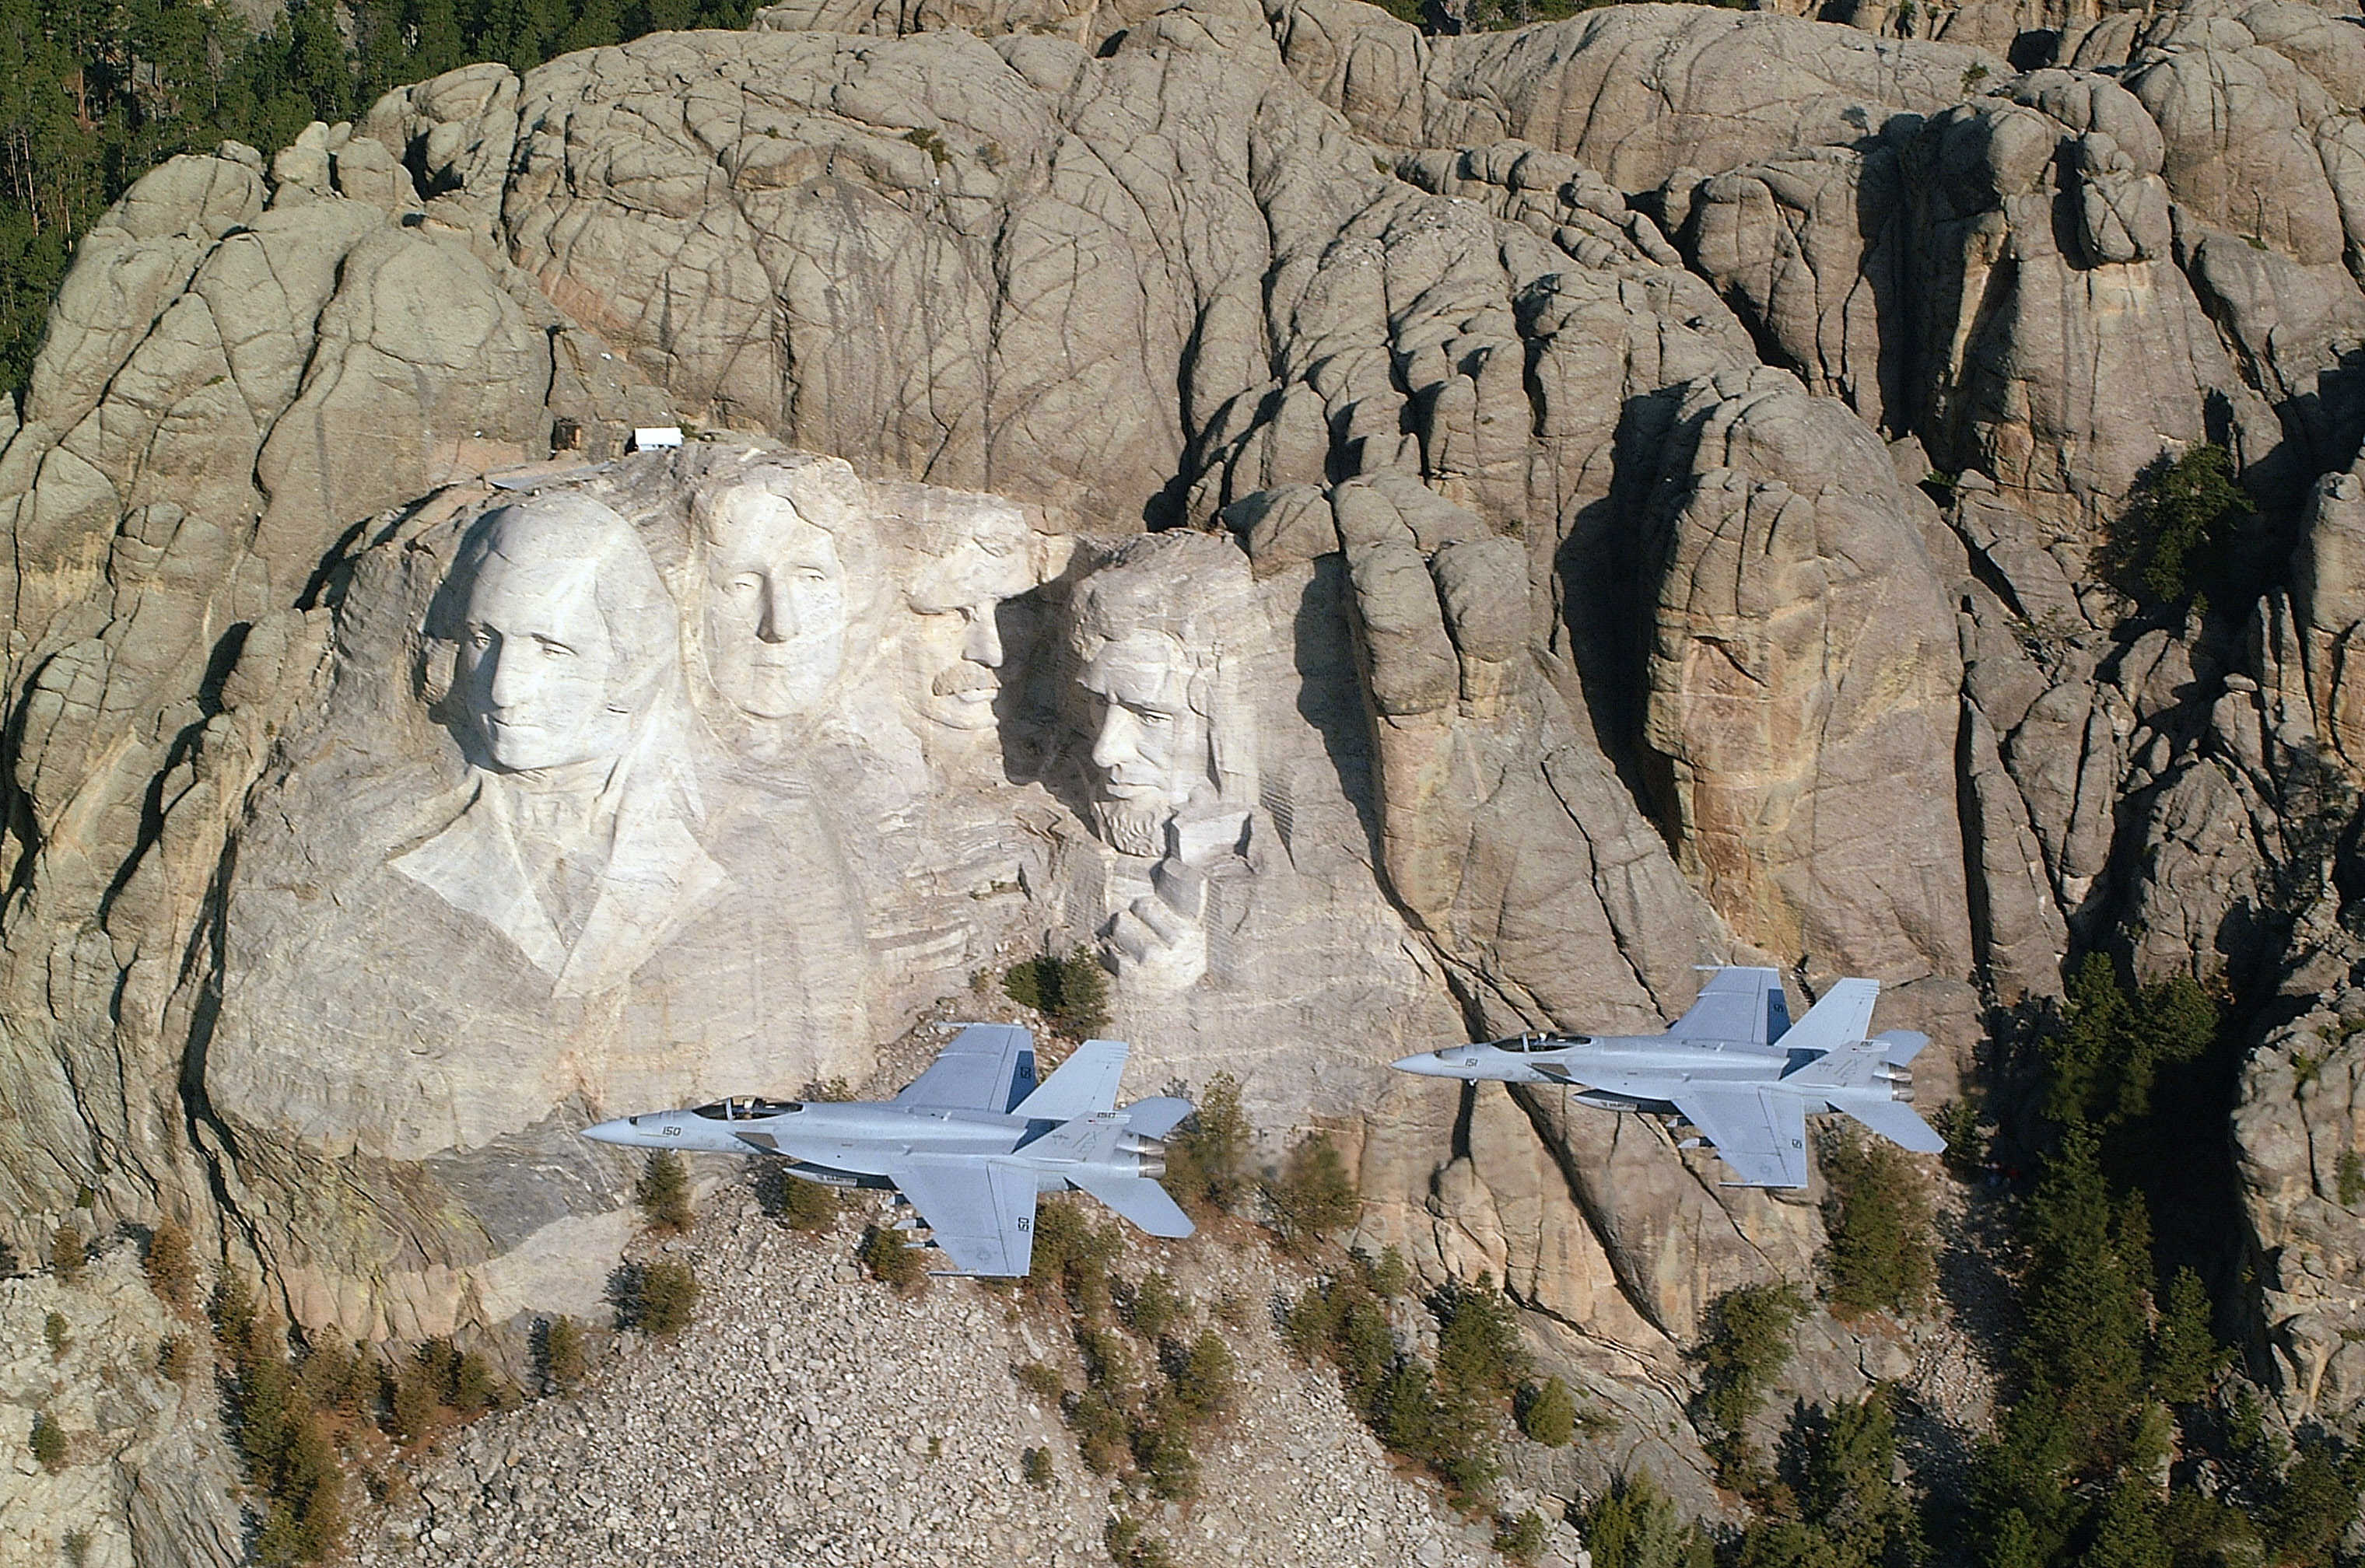 helicopter inside view with Mount Rushmore Might Be The Best Part About South Dakota on 100509 further Image2 likewise 175771649 besides Air Force One 0 additionally 20 Photos La Maison De Donald Trump Plus Belle Que La Maison Blanche Regardez Ce Luxe Insolent.